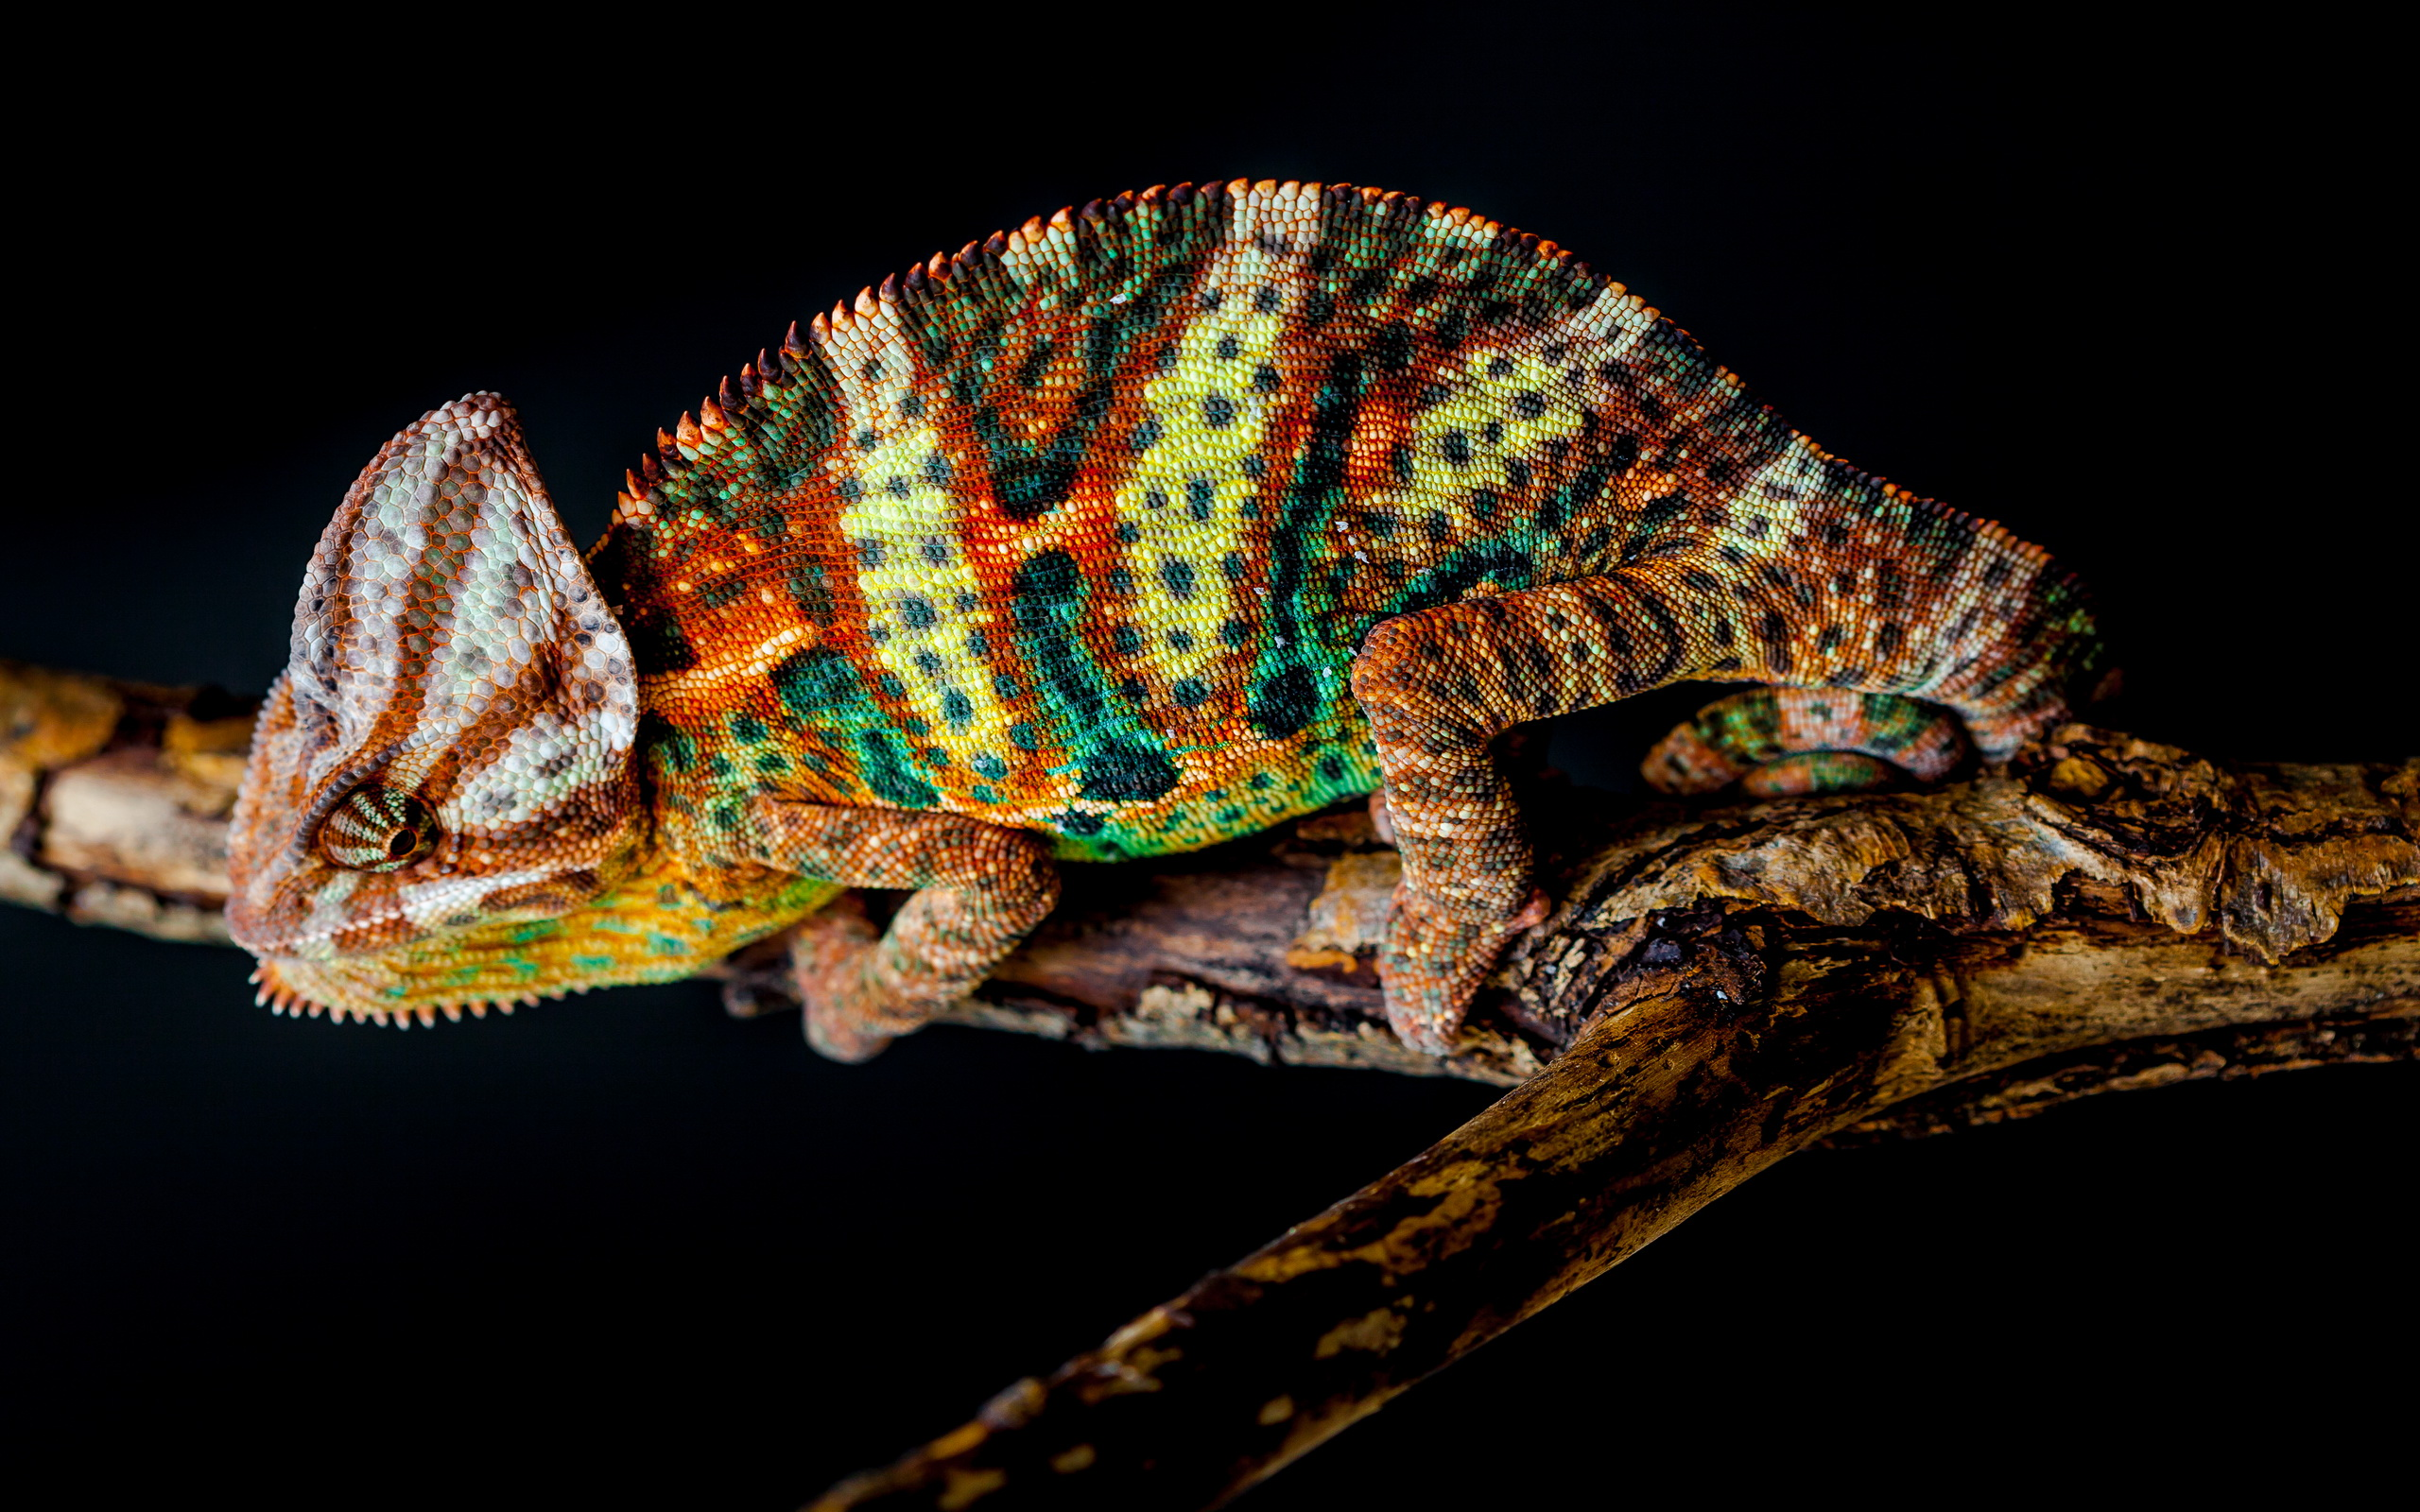 chameleon wallpaper 1920x1200 - photo #15